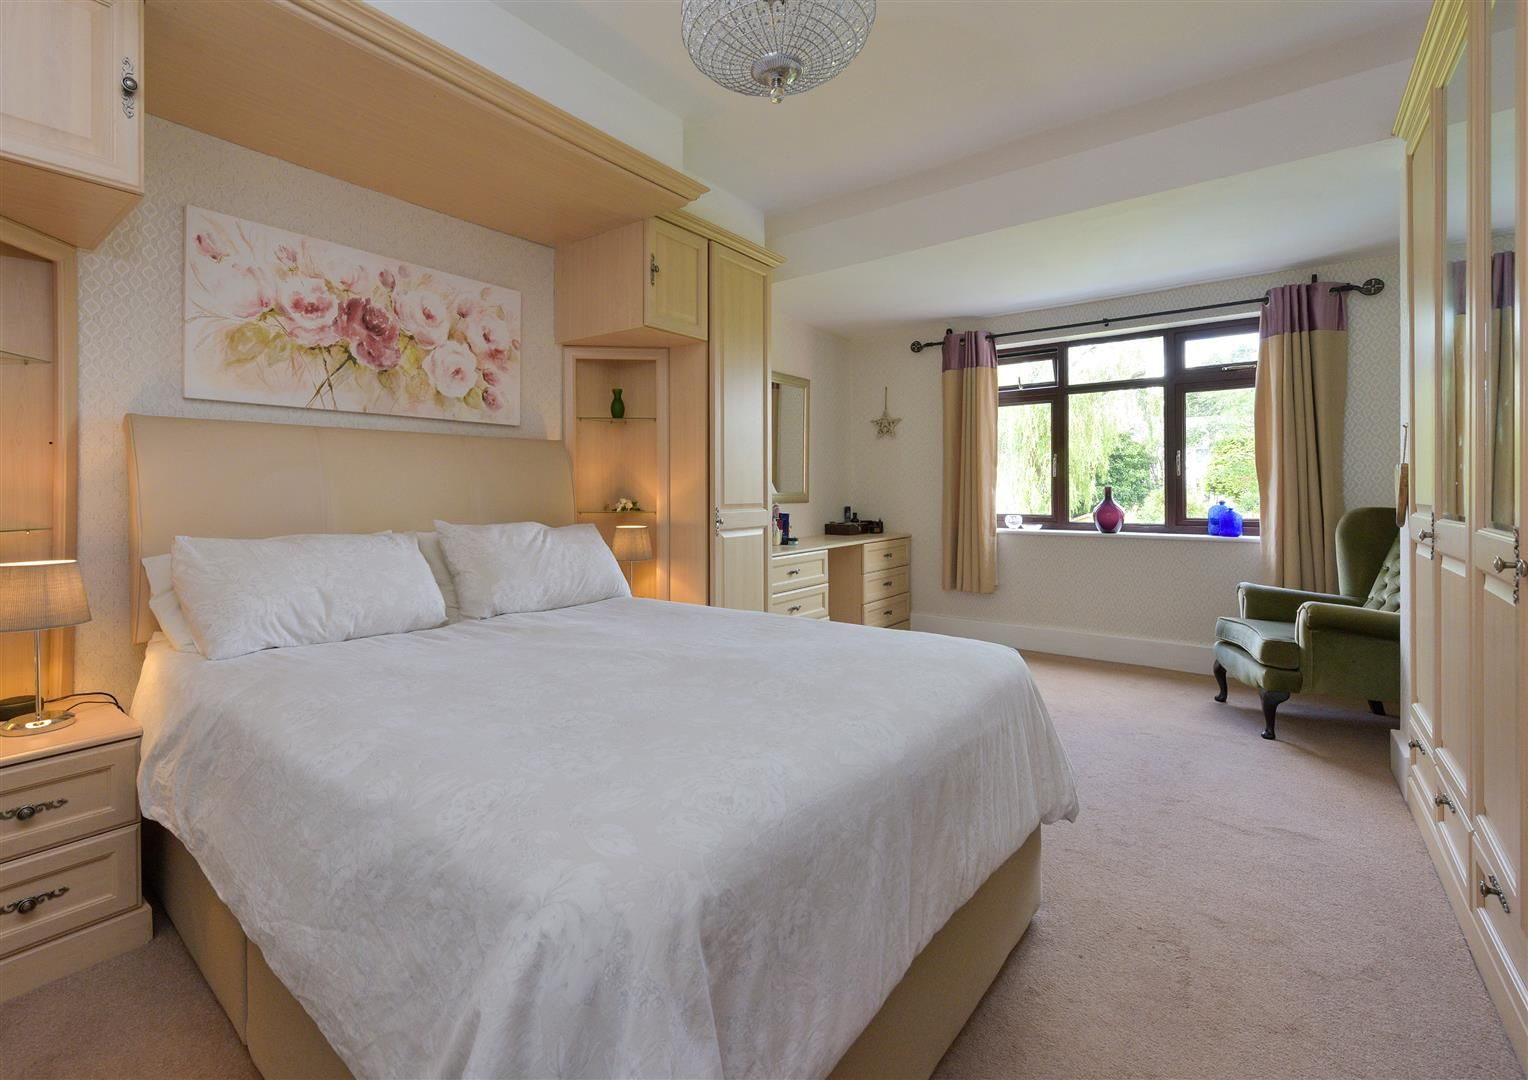 5 bed semi-detached for sale 14